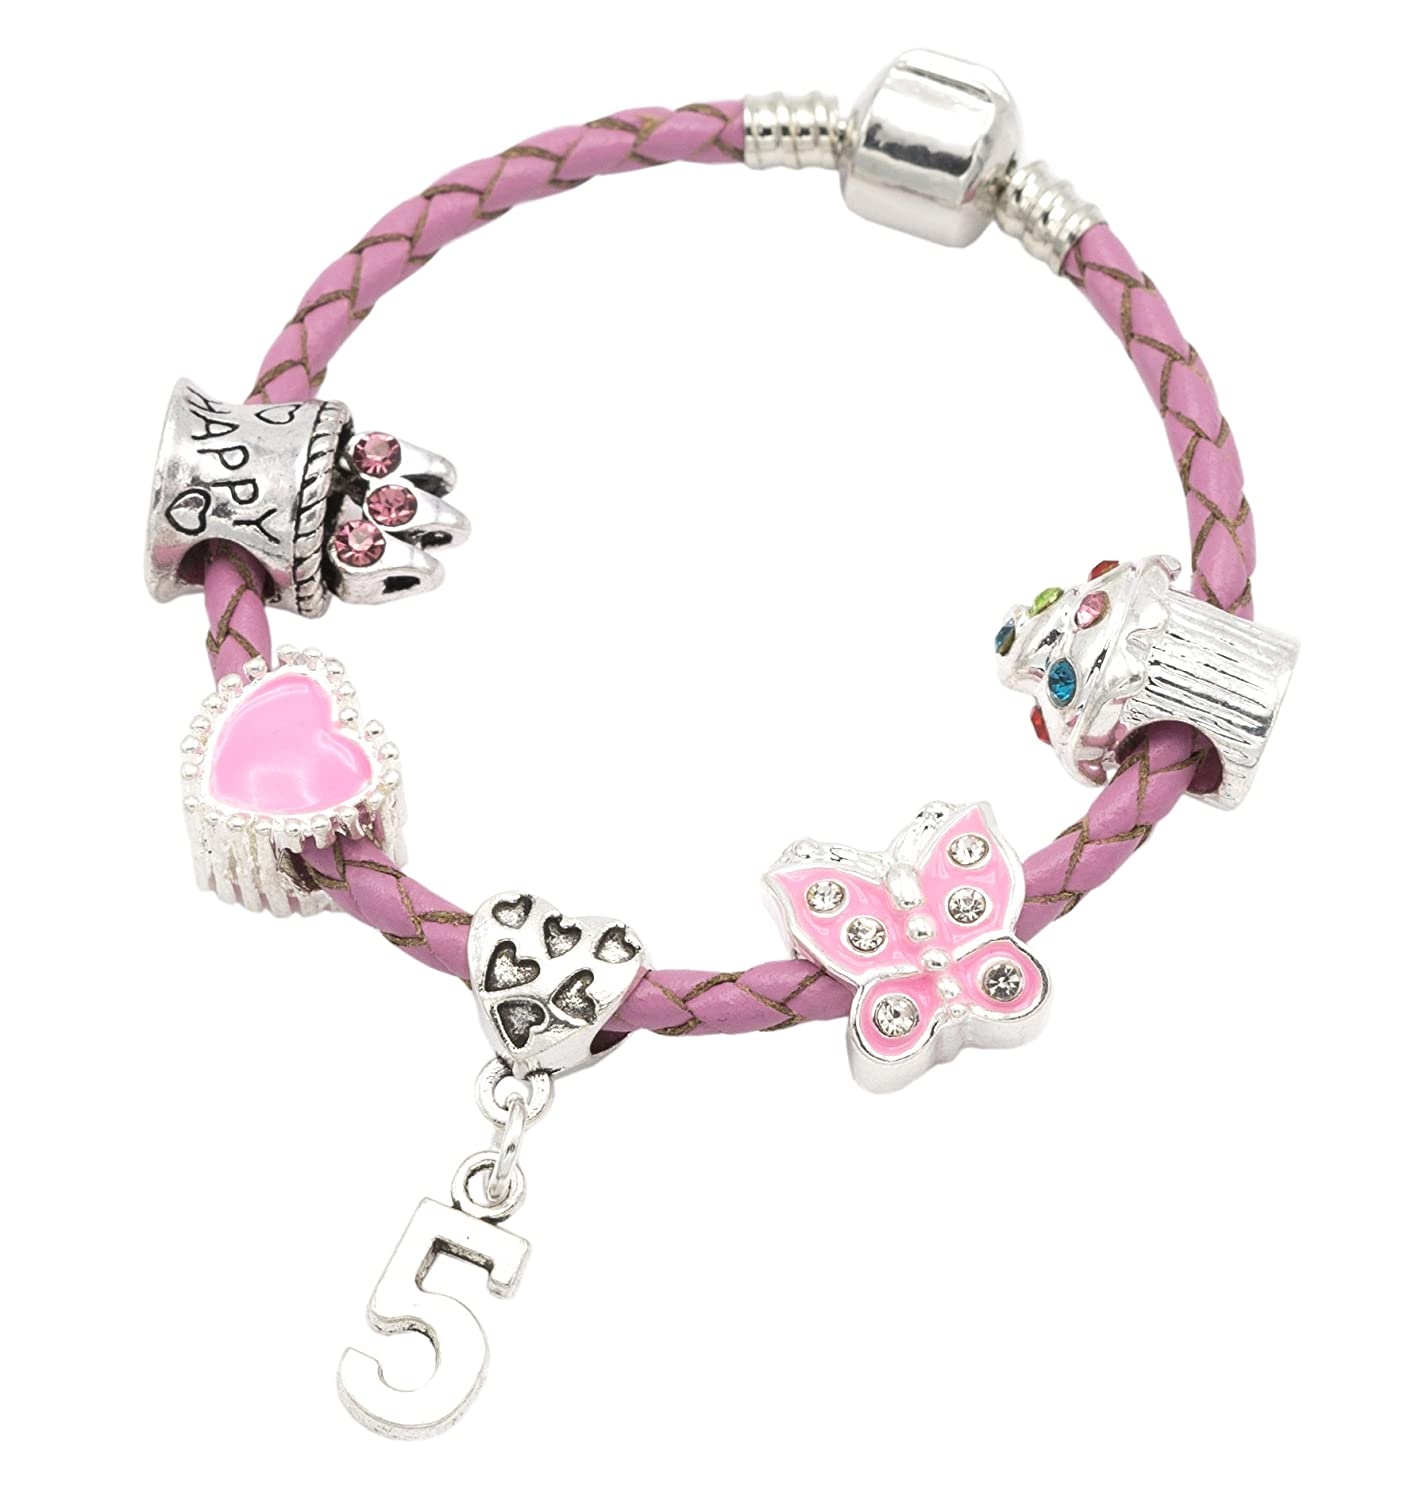 Children's Pink Leather Happy 5th Birthday Charm Bracelet With Lovely Jewellery Hut Gift Pouch - Girl's & Children's Birthday Gift Jewellery BRKID5